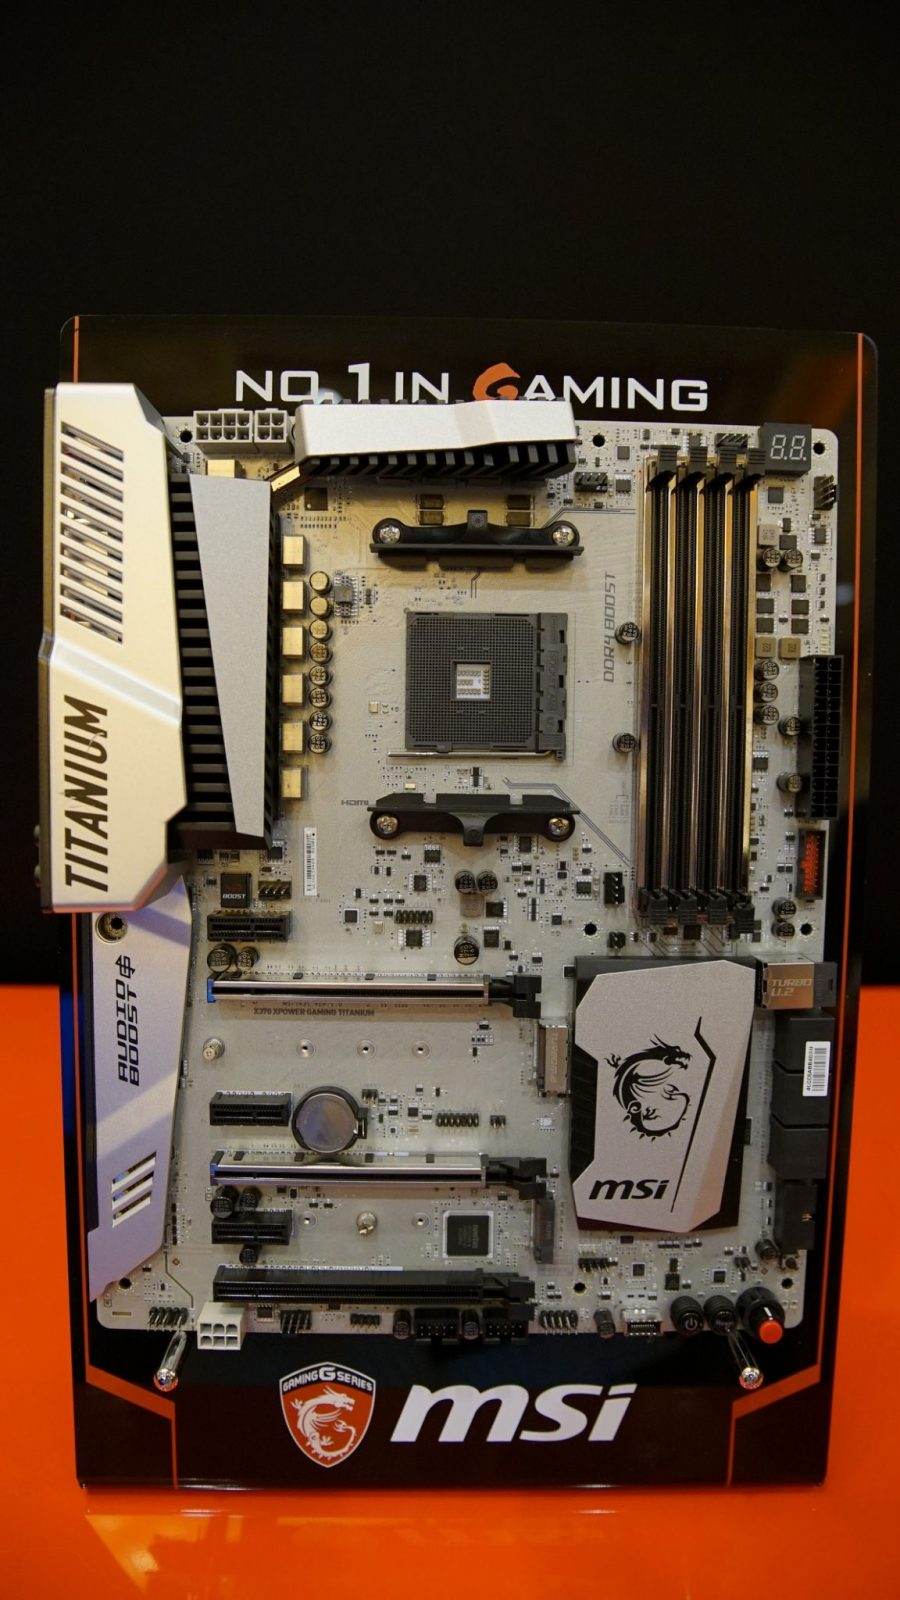 As you can see in the pictures the first board is MSI s X370 Gaming Titanium which will be a higher end board with full overclocking ready power design